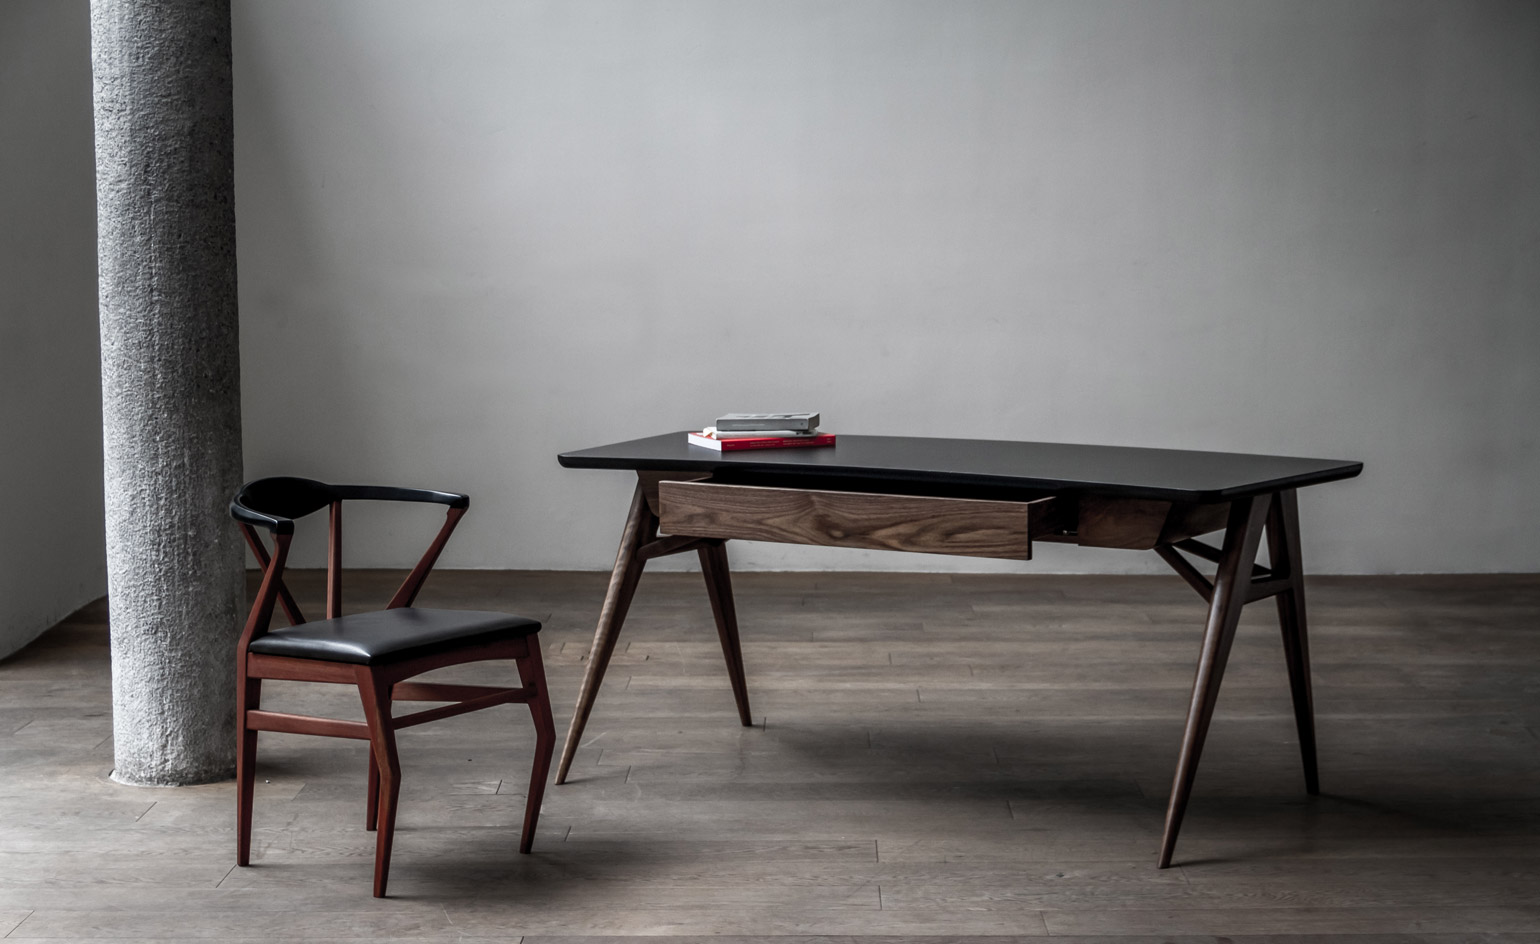 New design company luteca marries scandinavian design and for Scandinavian design furniture